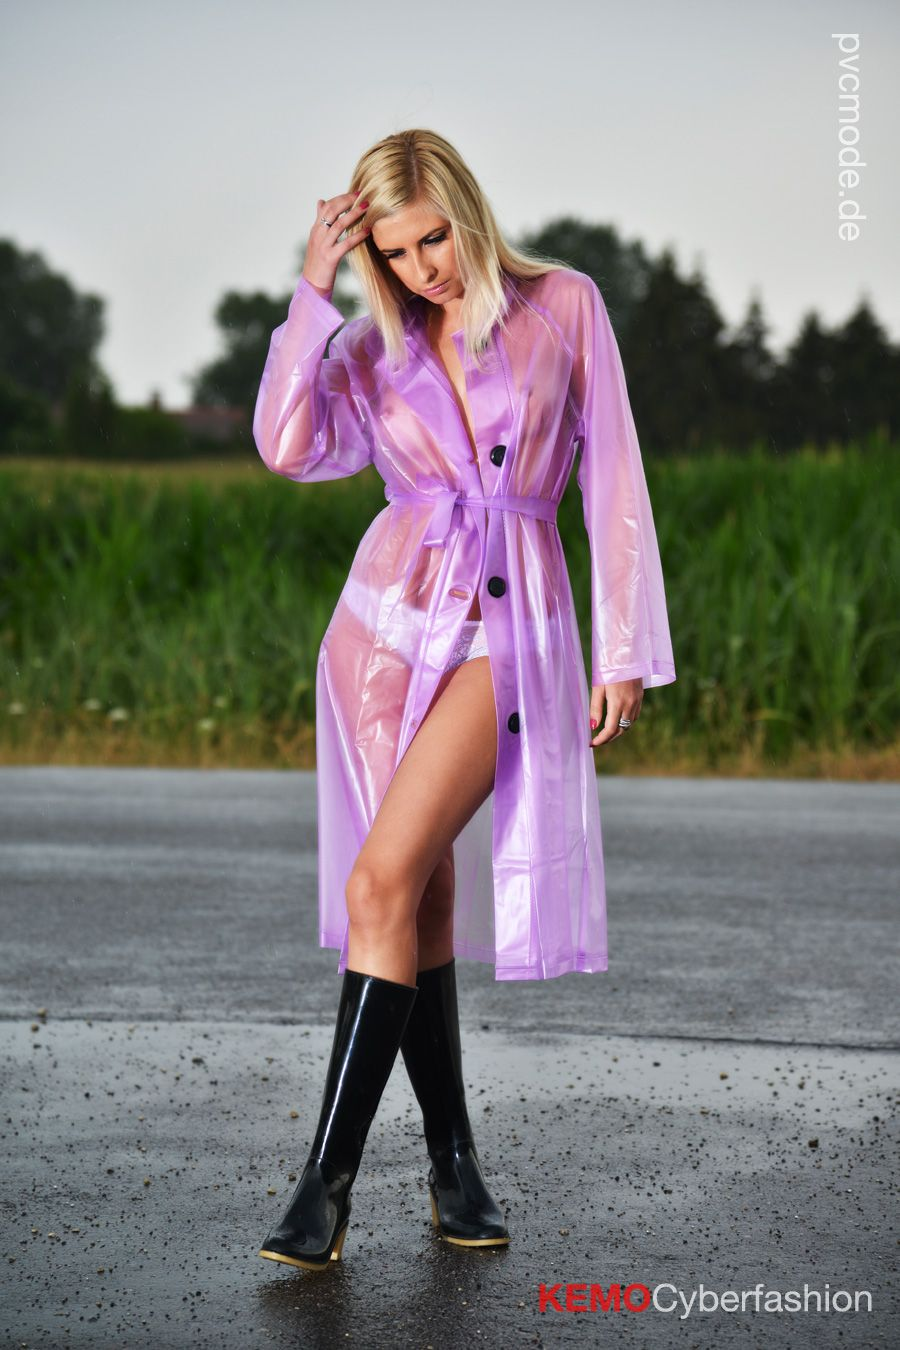 Sexy Girl Dressed In A Transparent Lilac Pvc Raincoat From